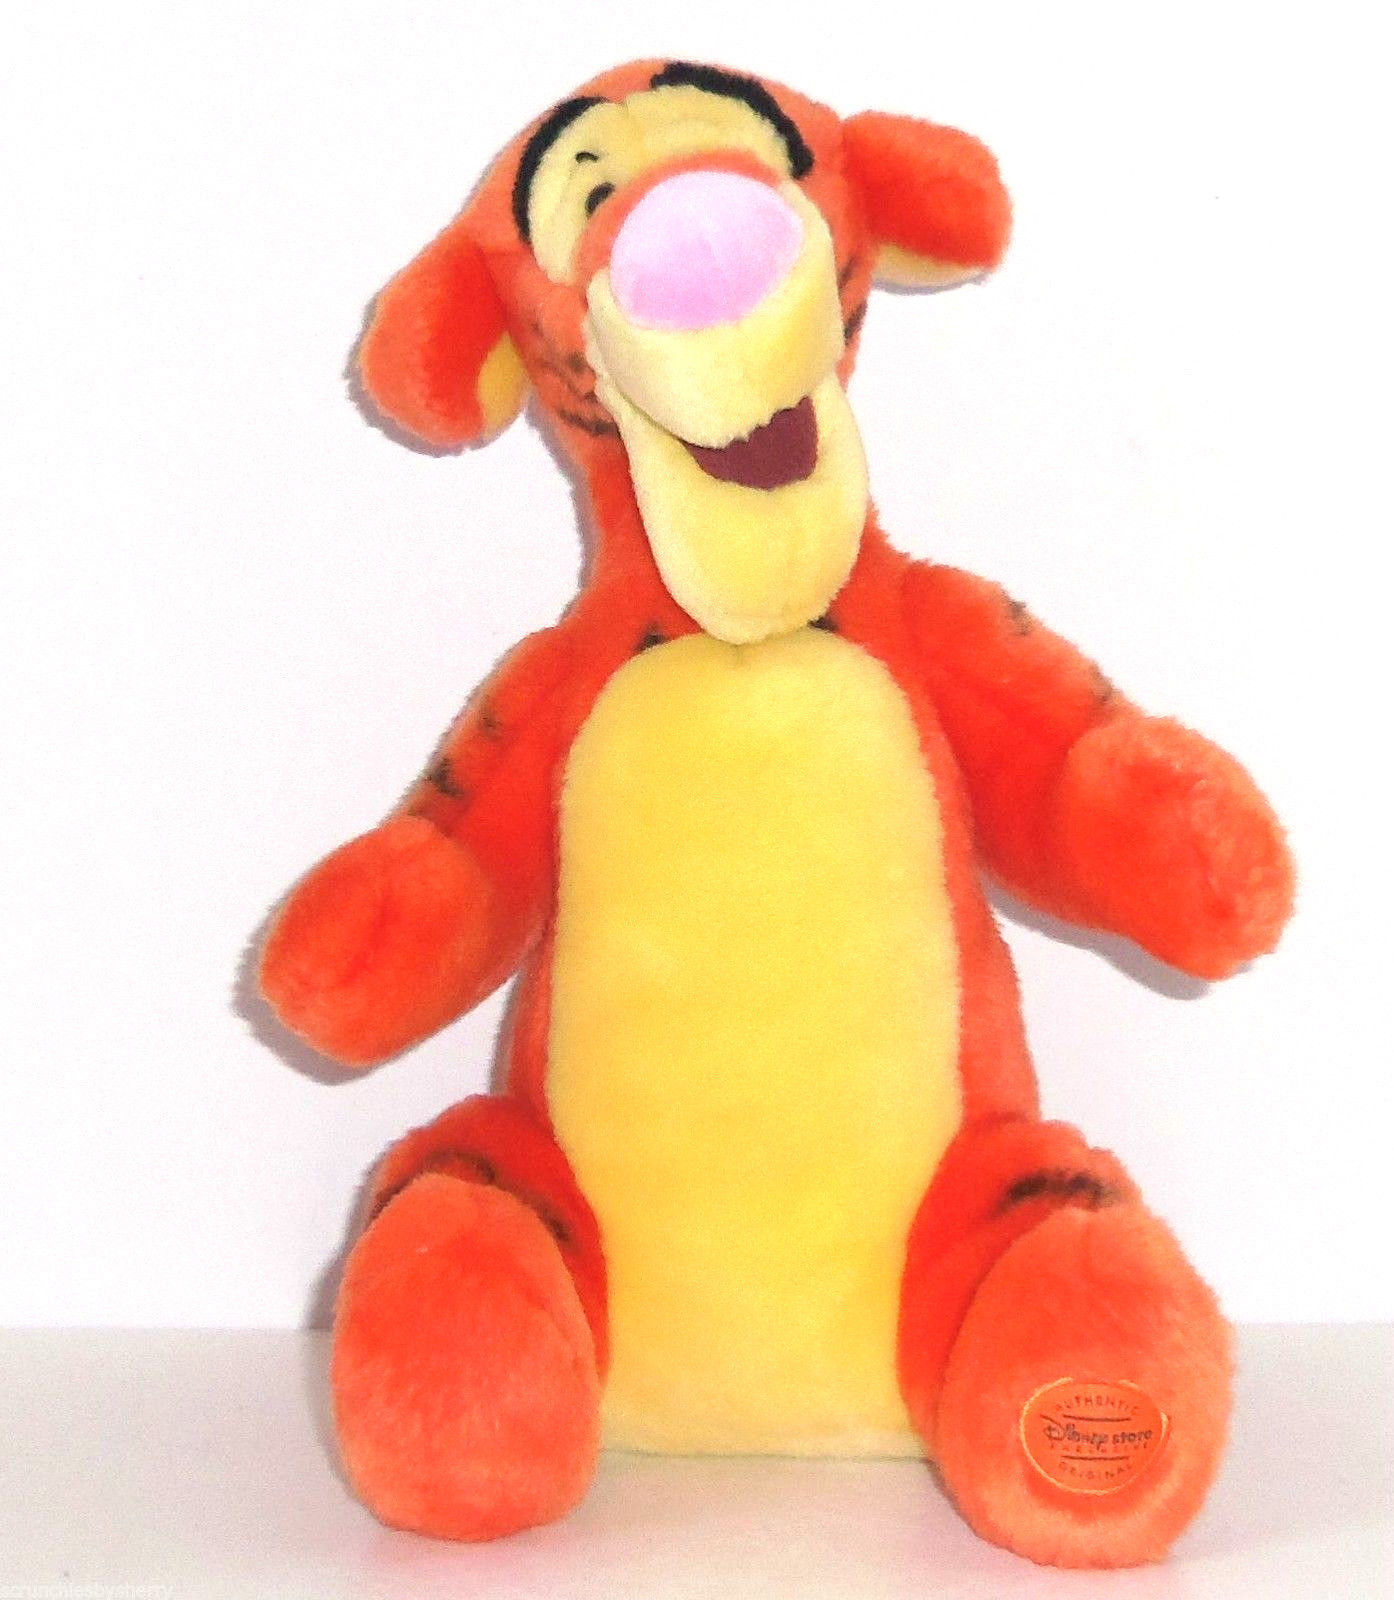 Primary image for Disney Store Tigger Plush Toy Stuffed Animal Winnie the Pooh 13""